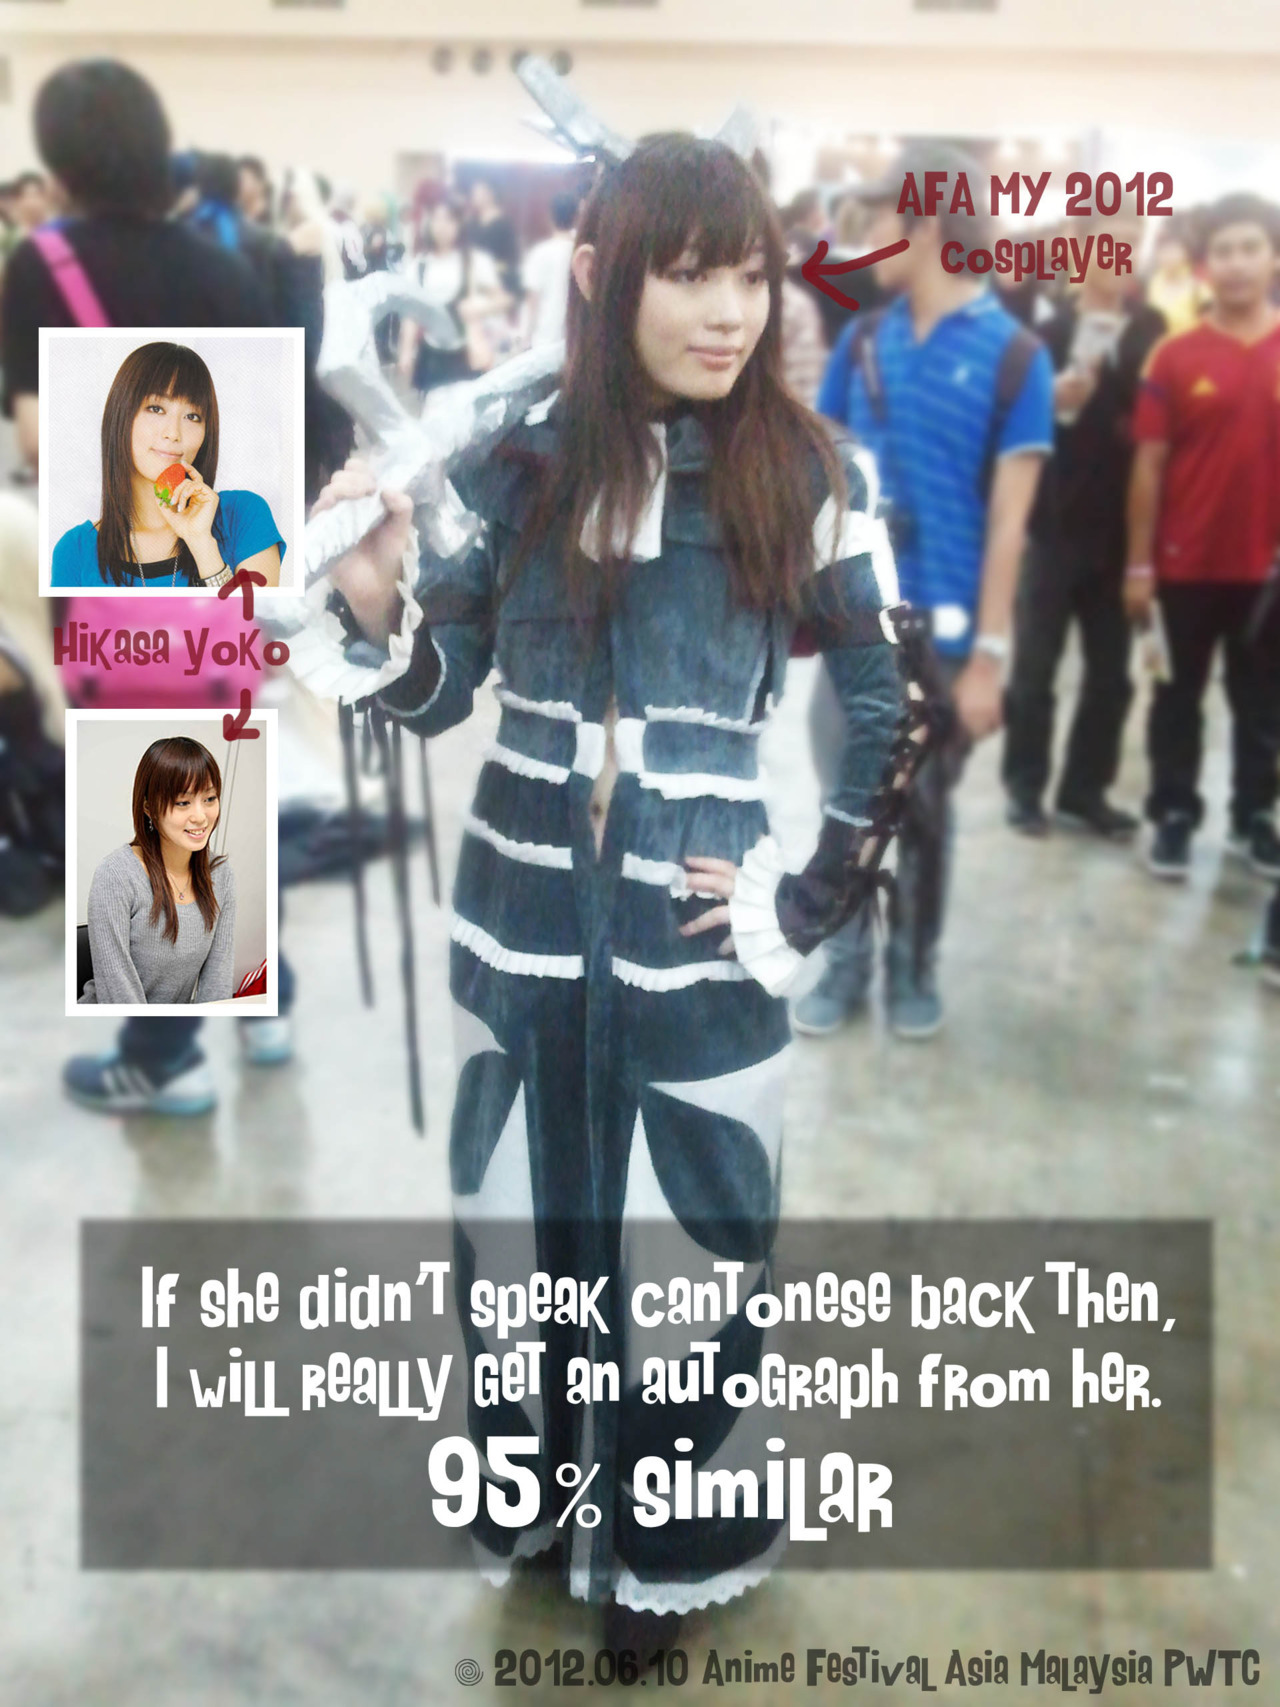 happydeadmask:  Went to Anime Festival Asia 2012 @Malaysia… and I saw a cosplayer who look 95% or 100% like Hikasa Youko (the seiyuu who voiced Akiyama Mio in K-on!)… When I first saw her, I was like, 'WOW!' then 'CAMERA! FAST!'… she did surprised me… She should just cosplay Mio-chan~ Back then, if she really didn't speak Cantonese with her friends, I would really get an autograph from her…